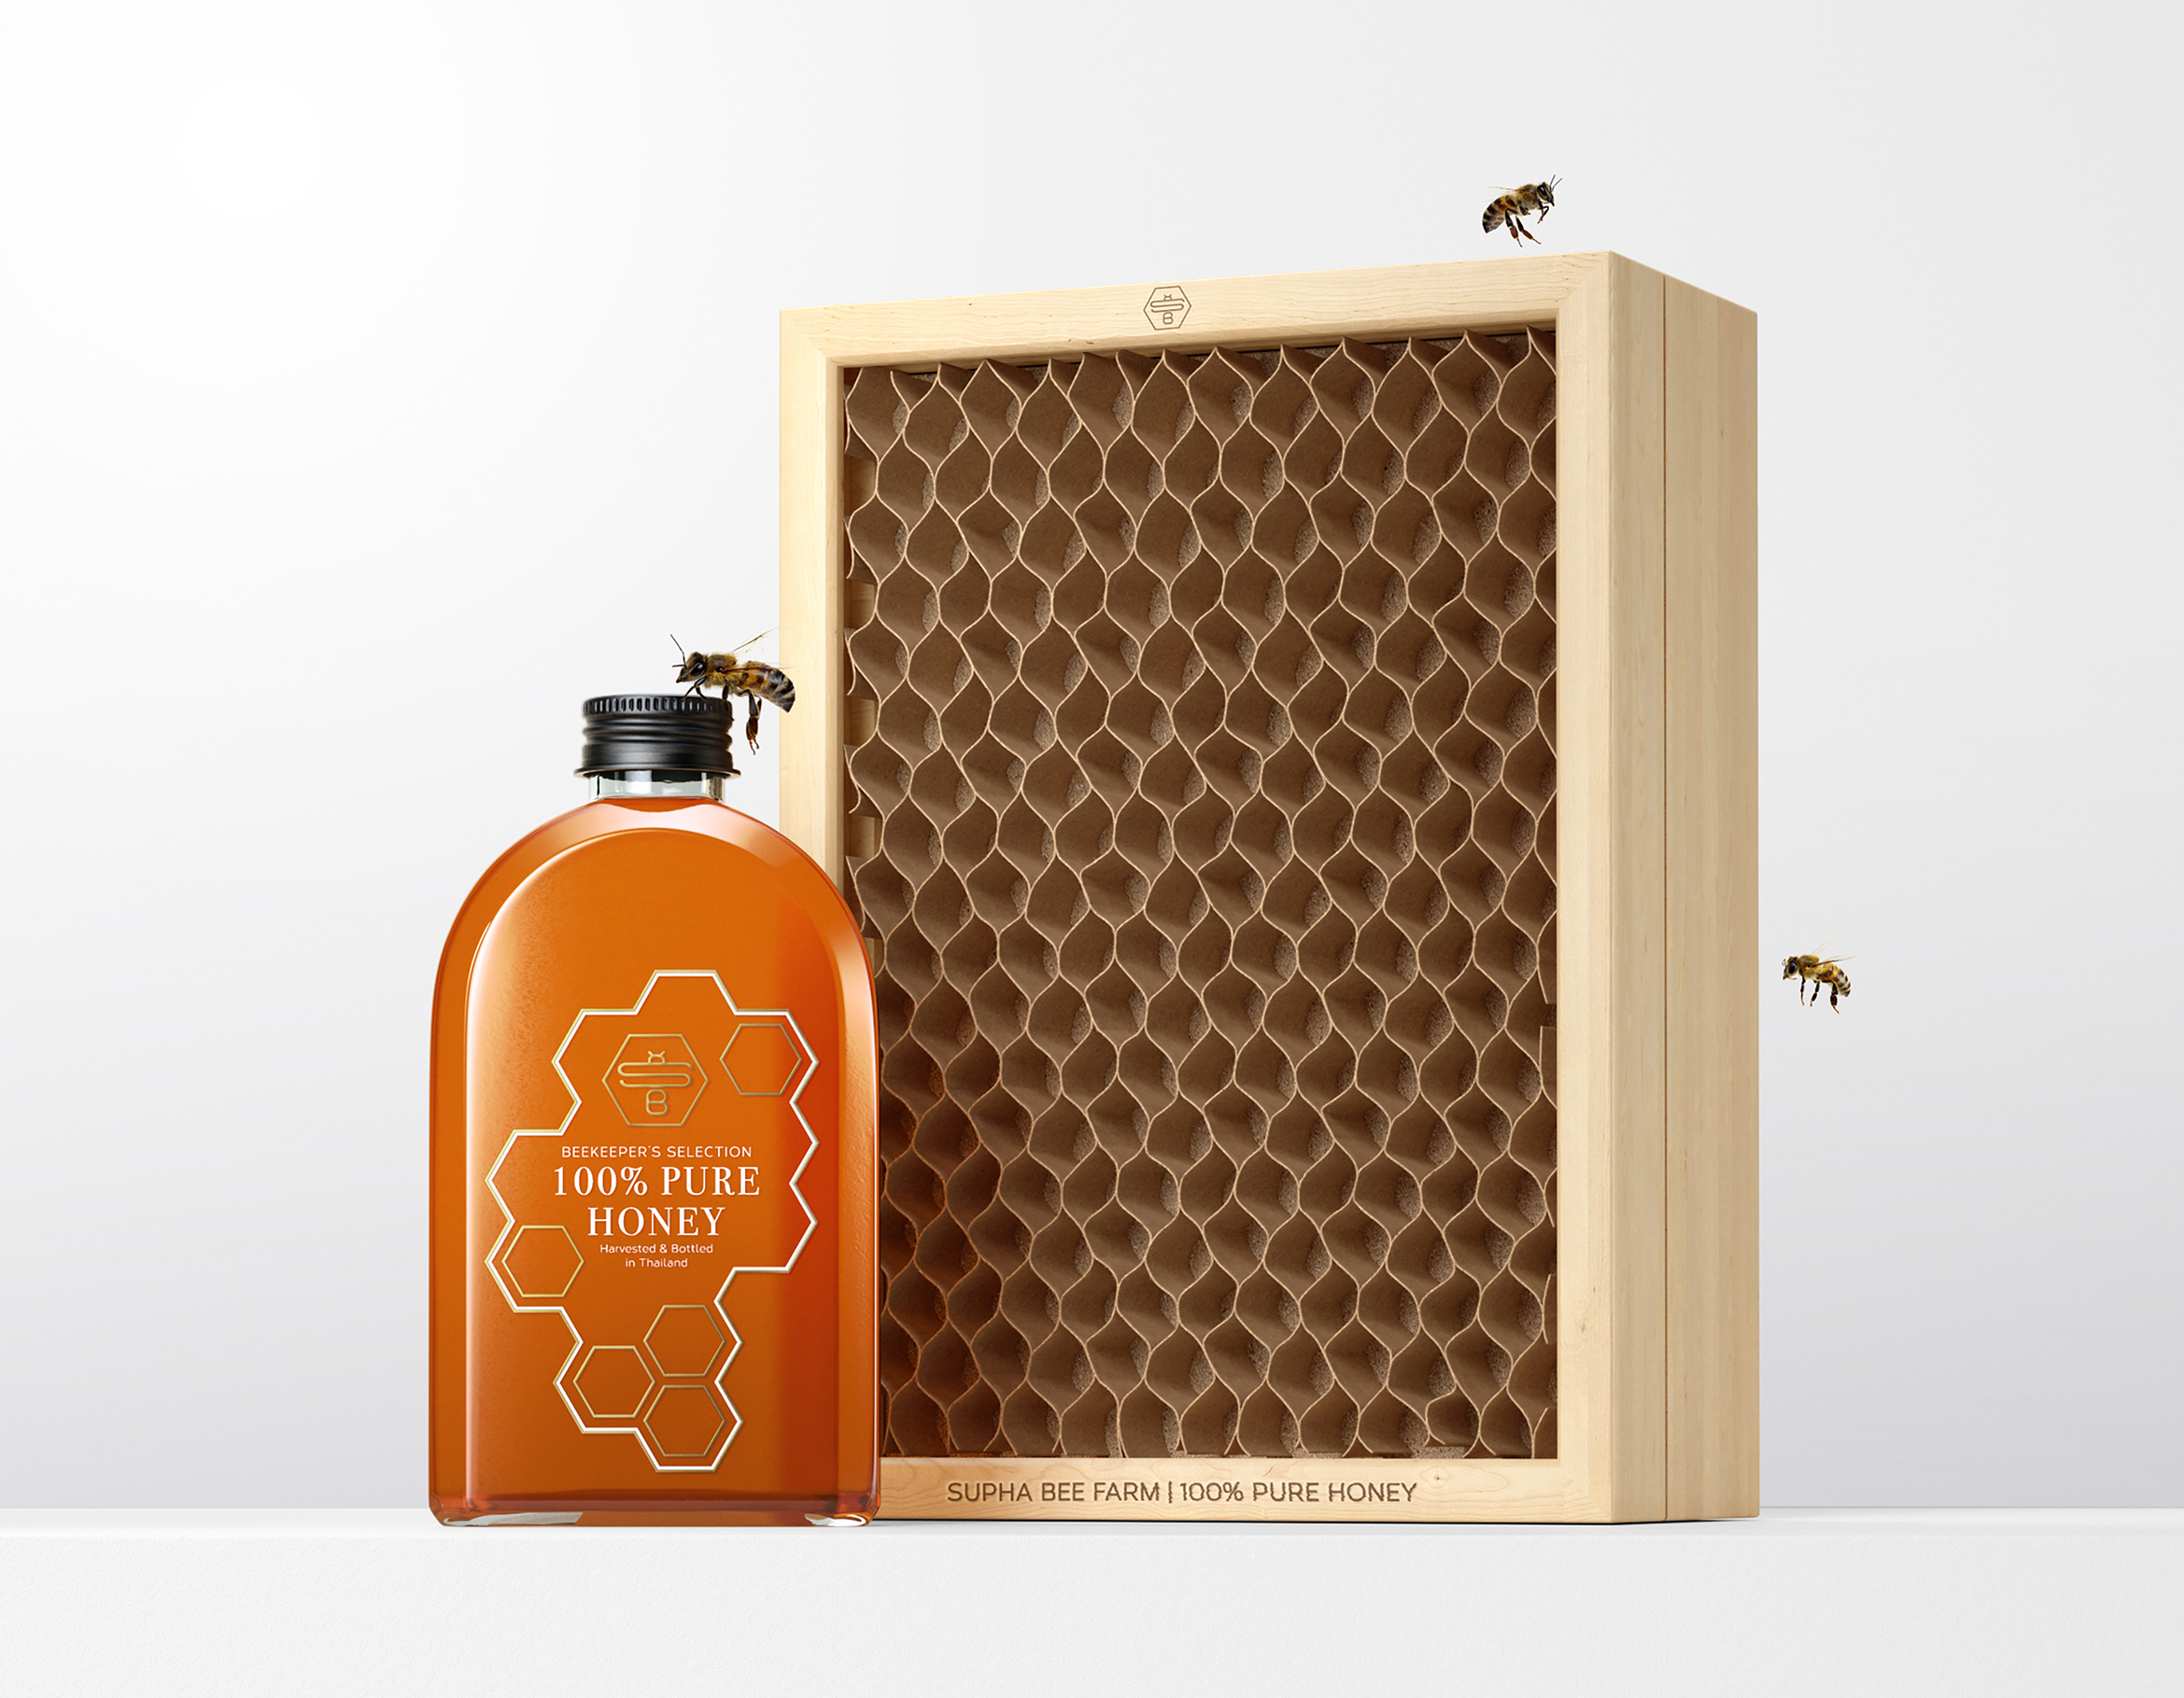 Supha Bee Farm Honey Packaging Design by Prompt Design